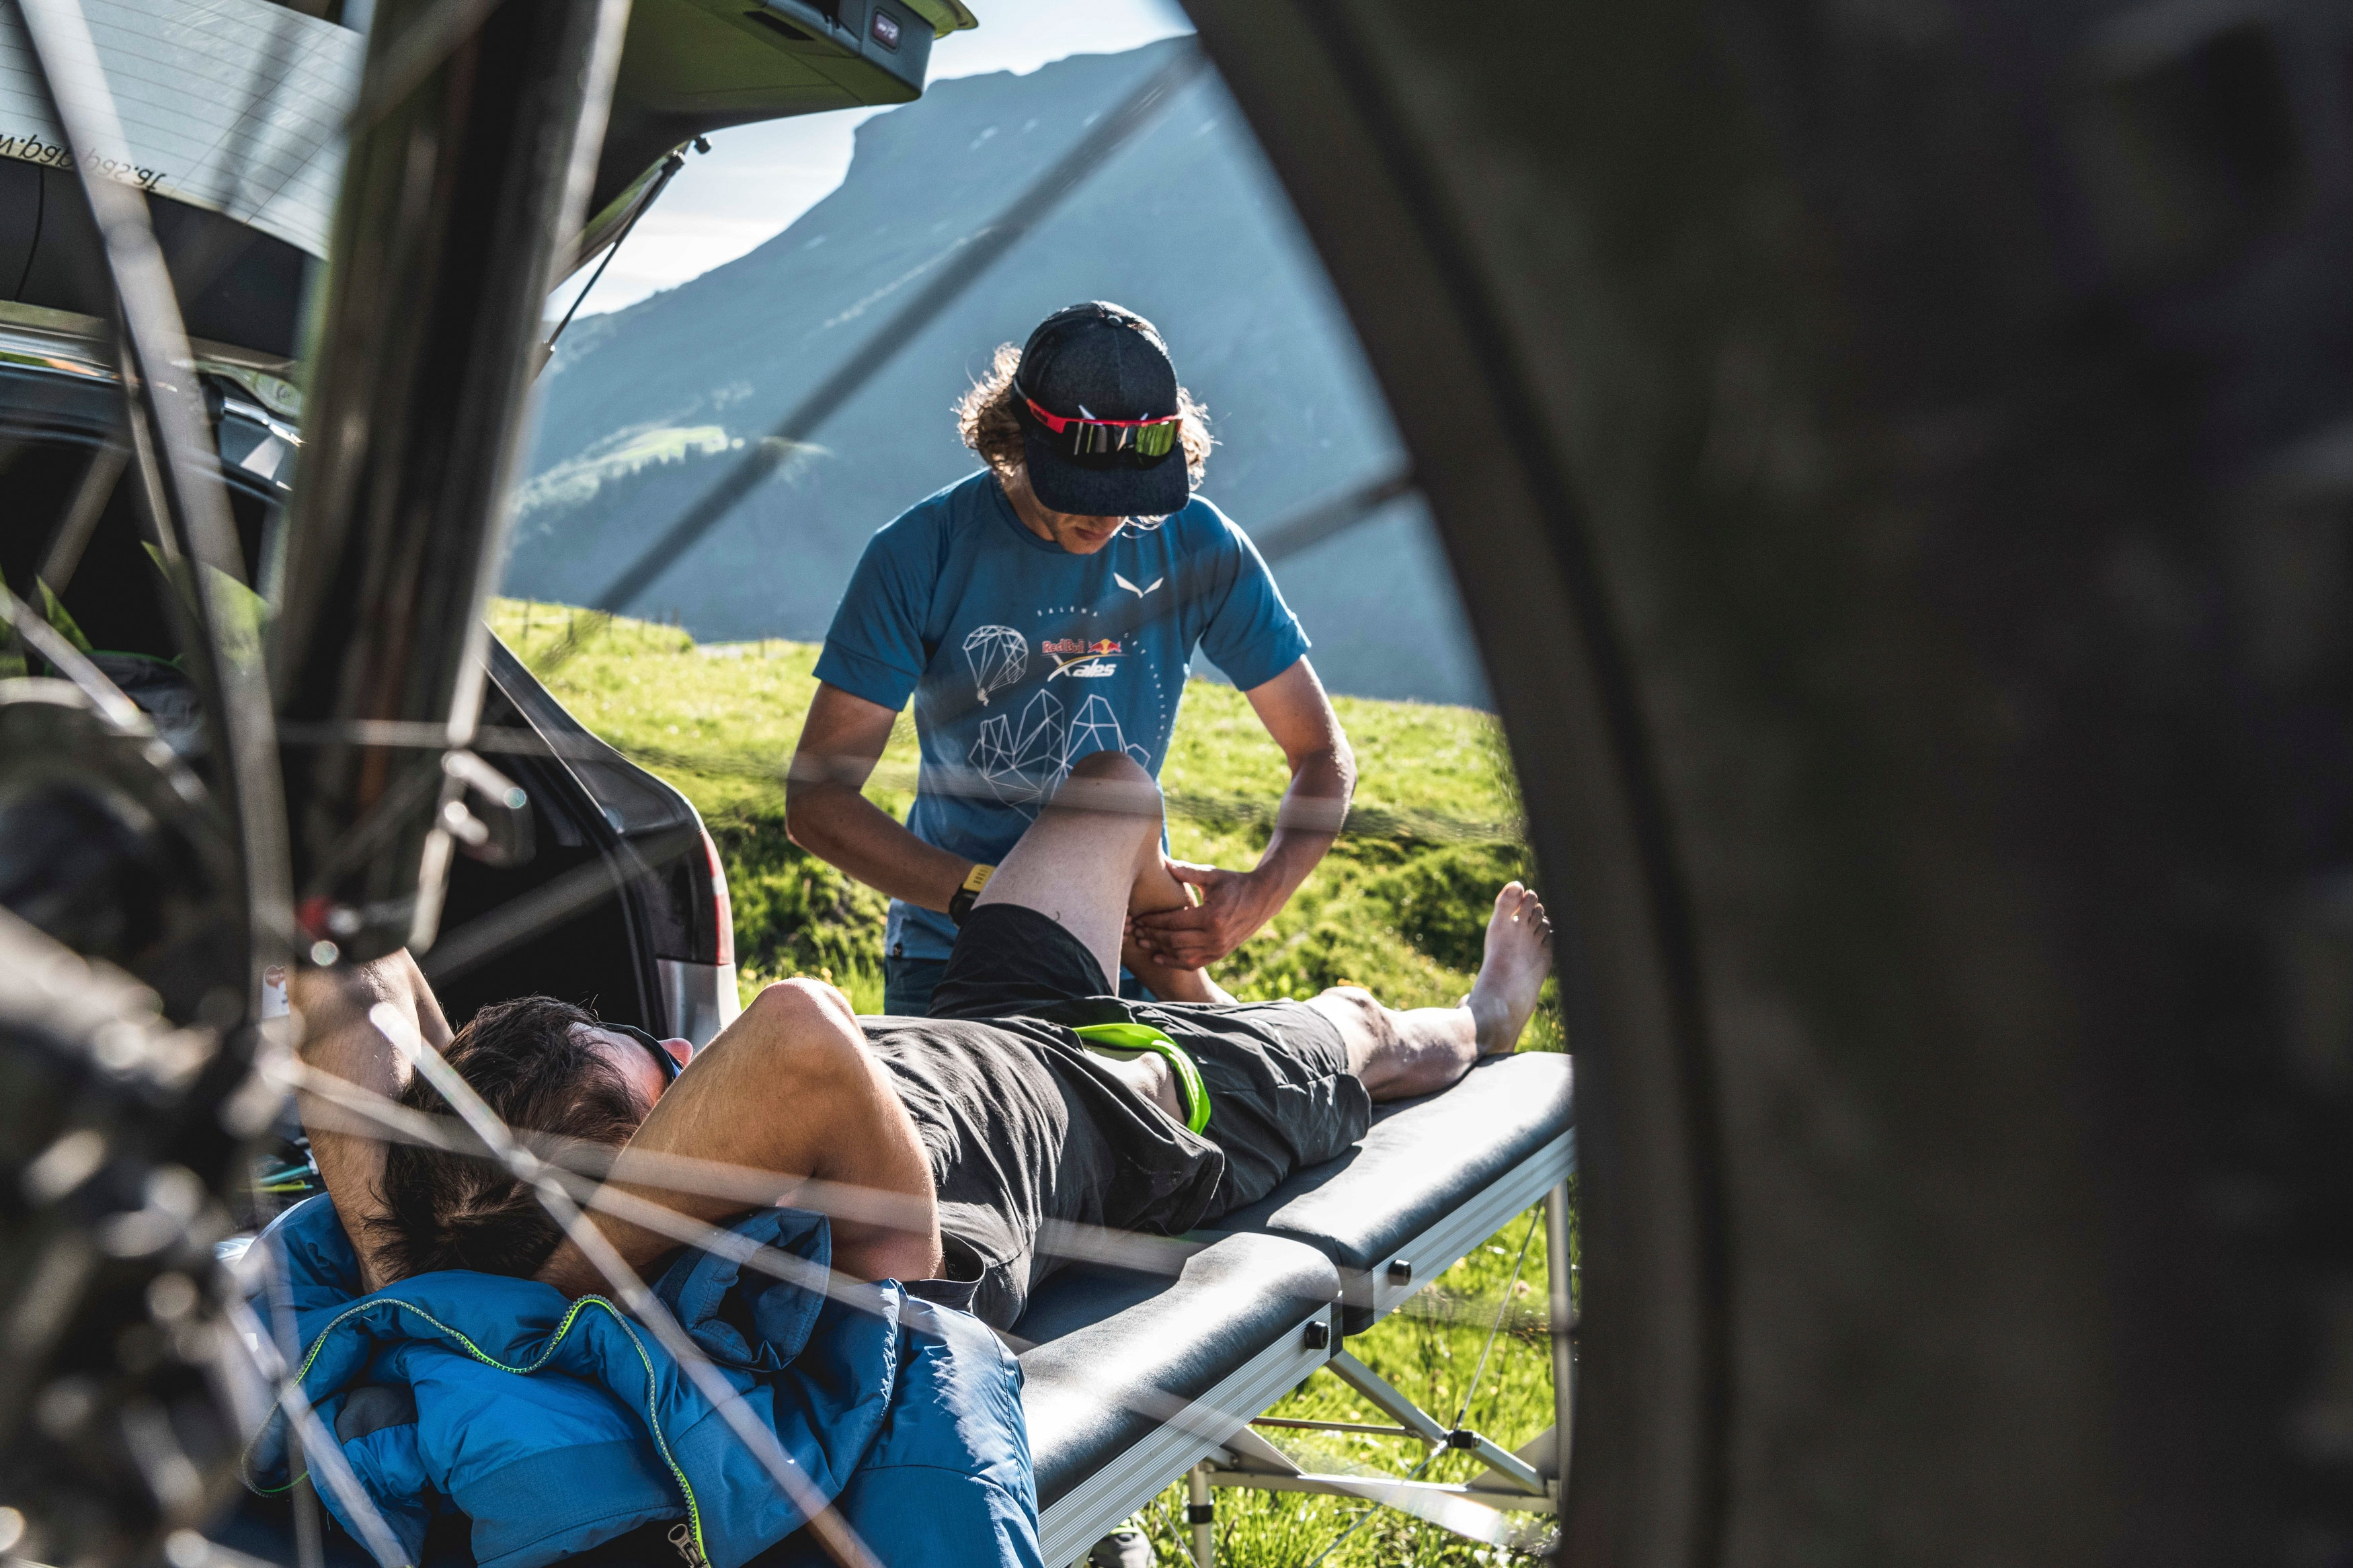 Aaron Durogati (ITA1) is getting last checks before the start of the Red Bull X-Alps in Flumet, France on June 24, 2019